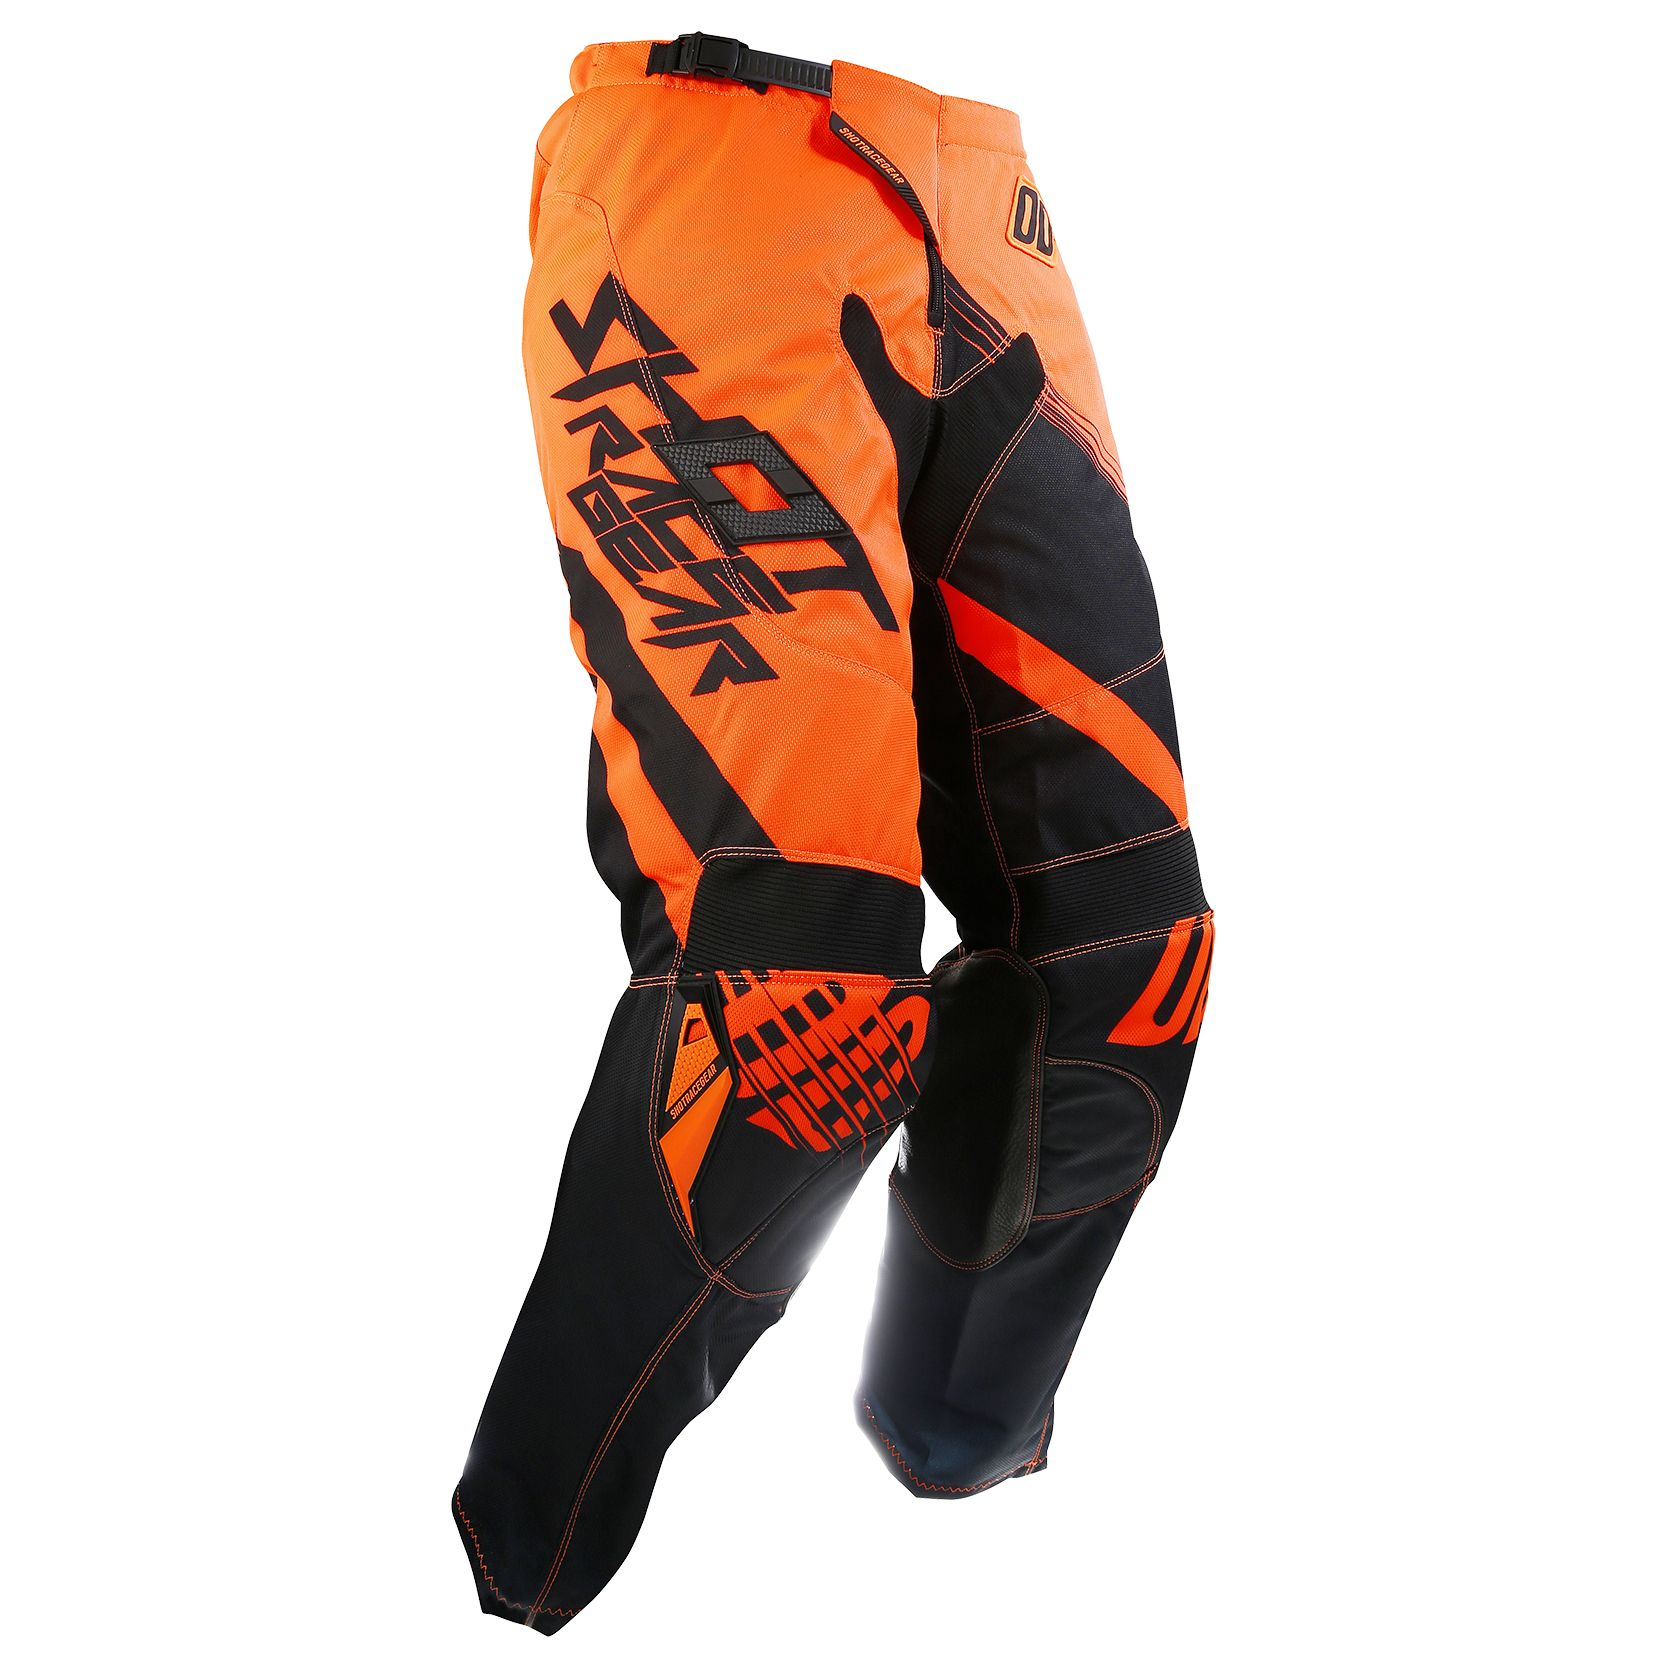 9c83eeb2885 Pantalón de motocross Shot outlet CONTACT CLAW NEON NARANJA 2017 ...